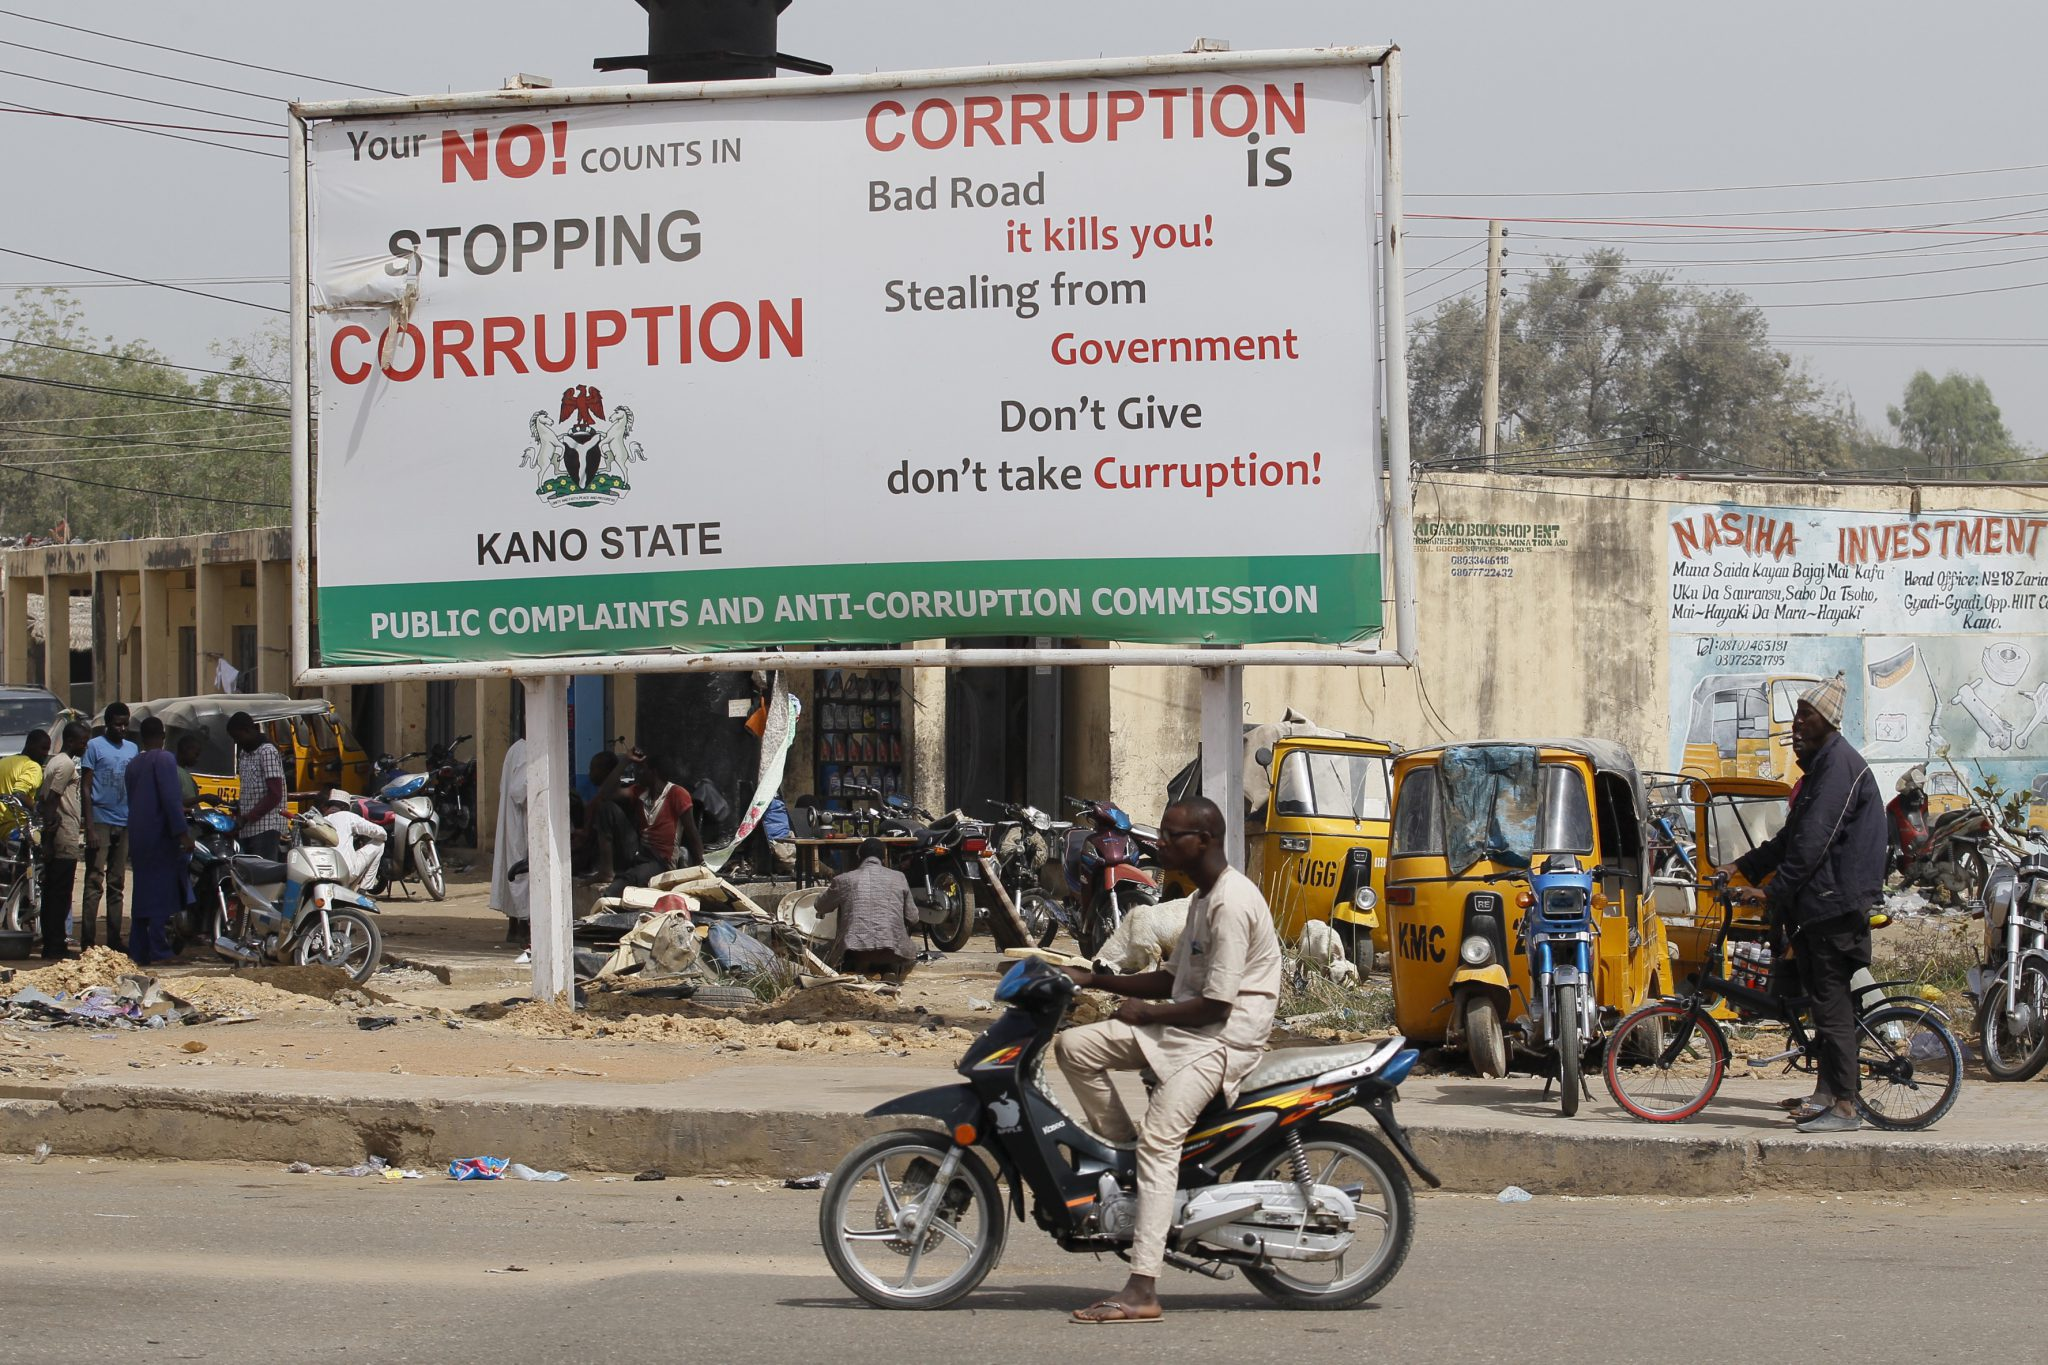 Constitutional basis of corruption and bad governance in Nigeria